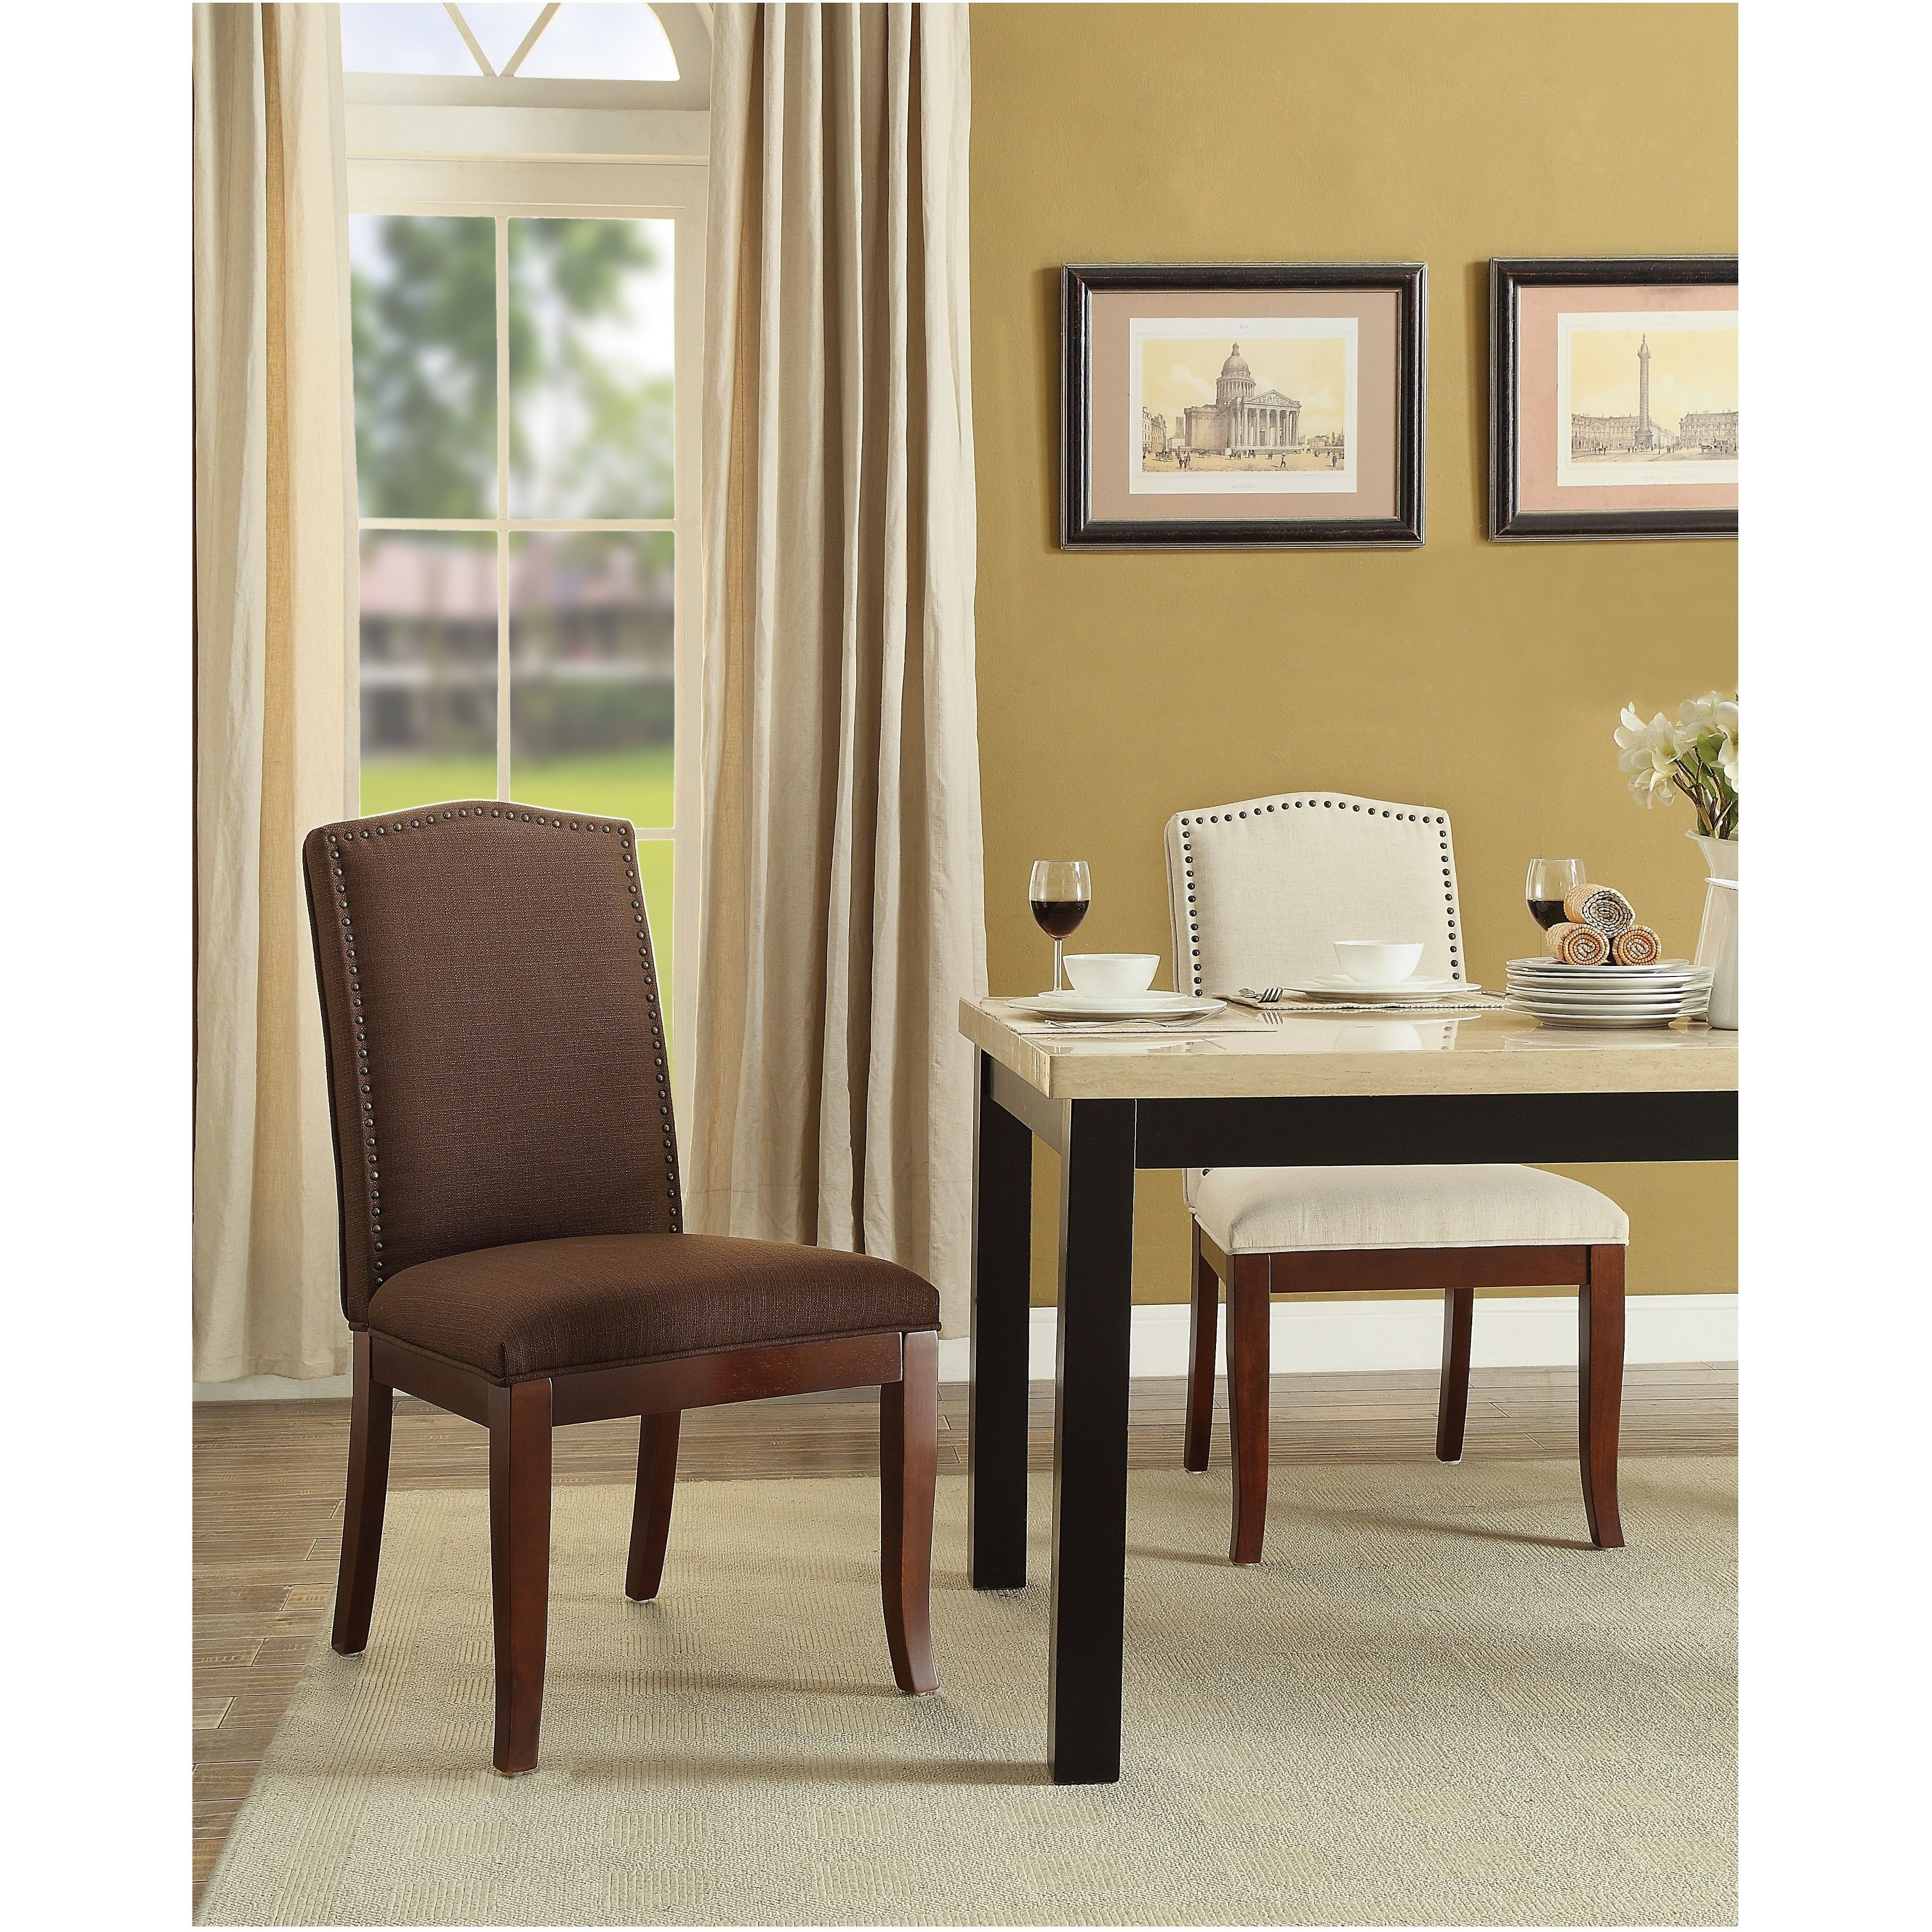 Beigecreamwhitefabricwood Dining Room Chairs Make Mealtimes Fascinating White Wooden Dining Room Chairs 2018